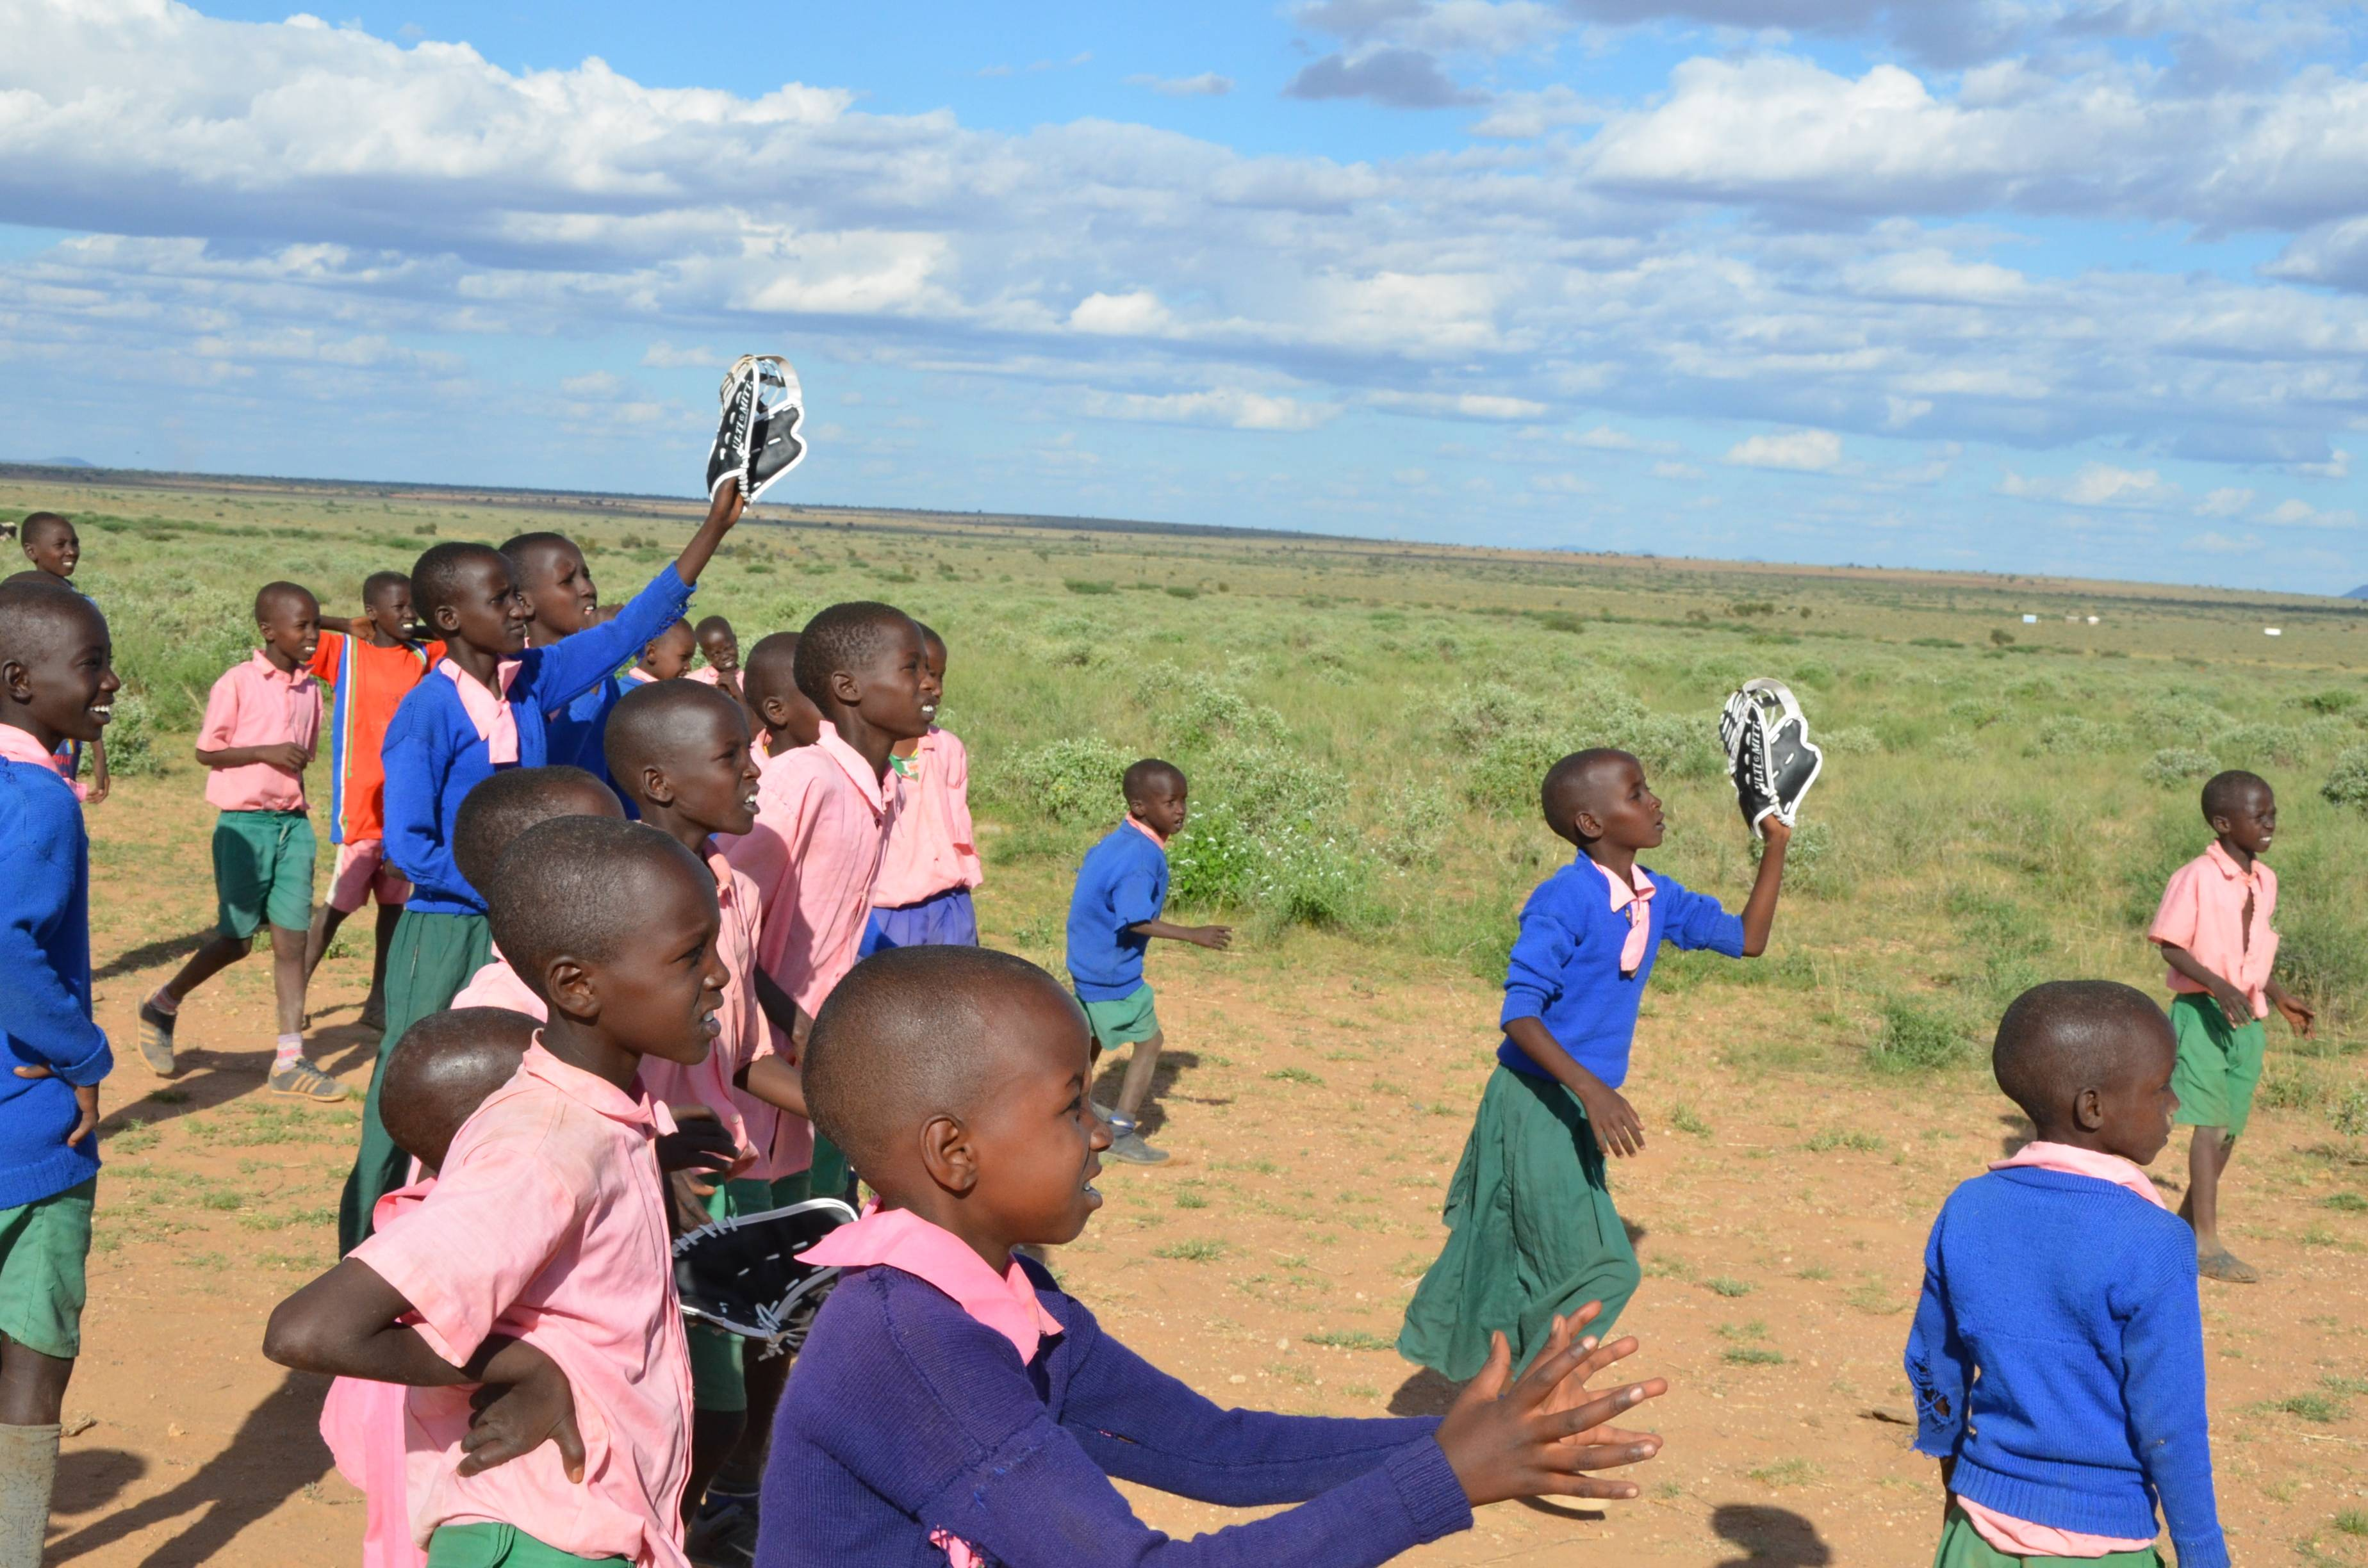 Gear for Goals' Awareness Night and Donation Drive hosted by Schaumburg Boomers Baseball Team on Friday, June 21st will benefit underprivileged children of Kenya (seen in photo) as well as other needy children around the globe.